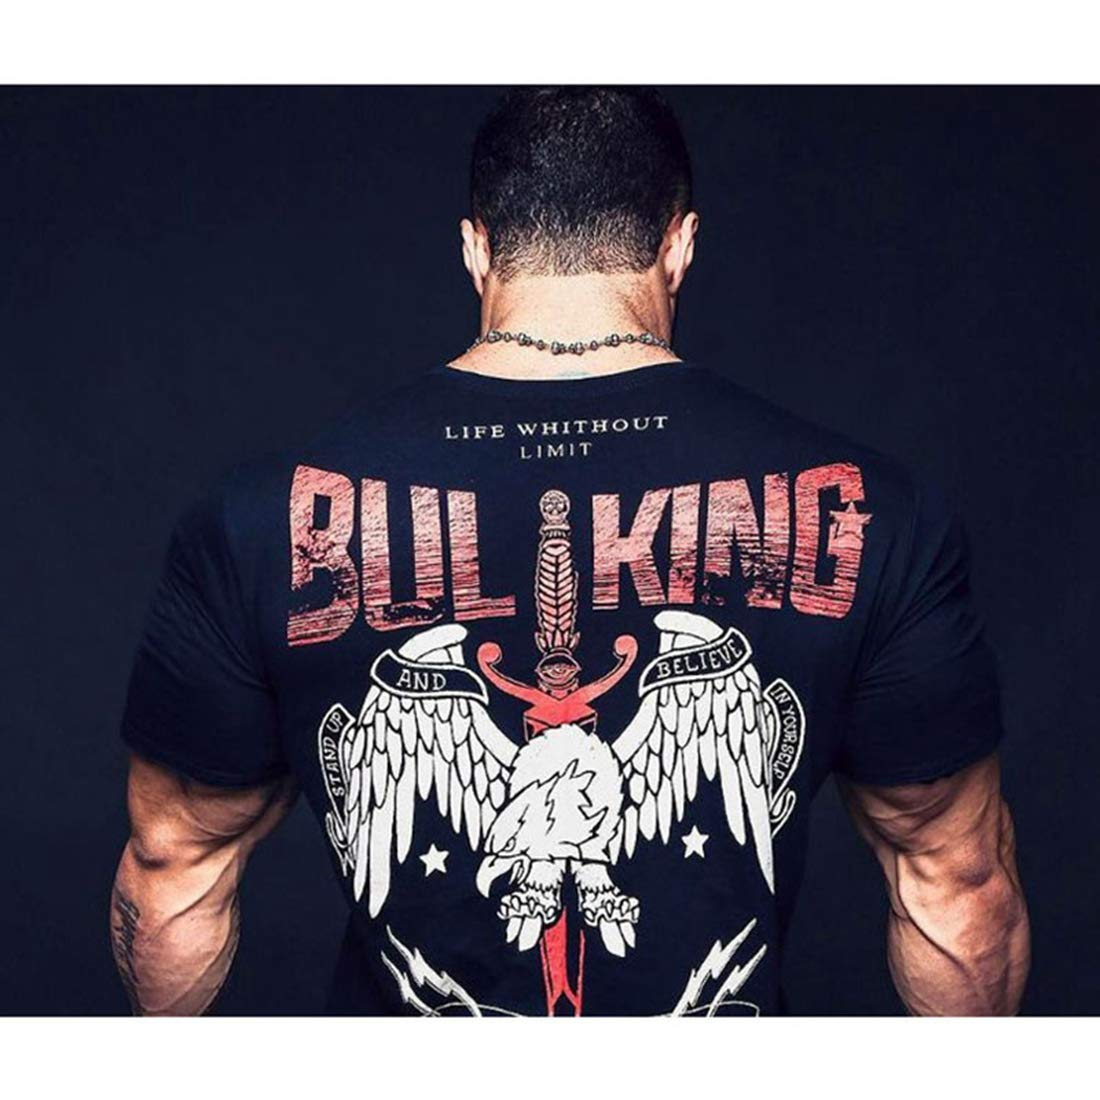 Mens Gym Workout T Shirt Bull Print Short Sleeve Muscle Cut Bodybuilding Training Fitness Tee Tops